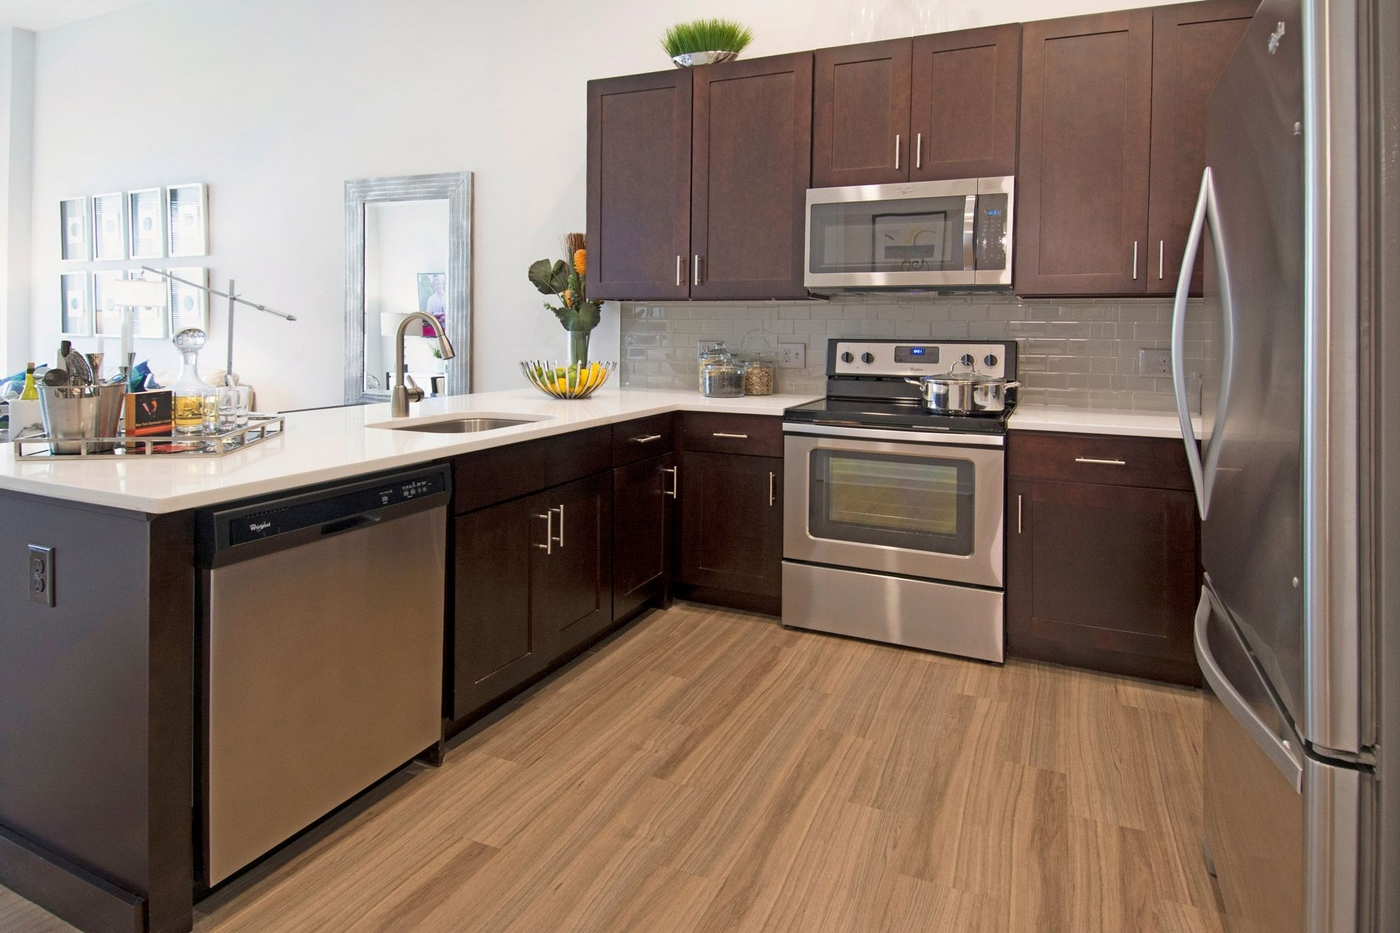 Interior image of apartment kitchen with wood floors, dark wood cabinets and stainless steel appliances